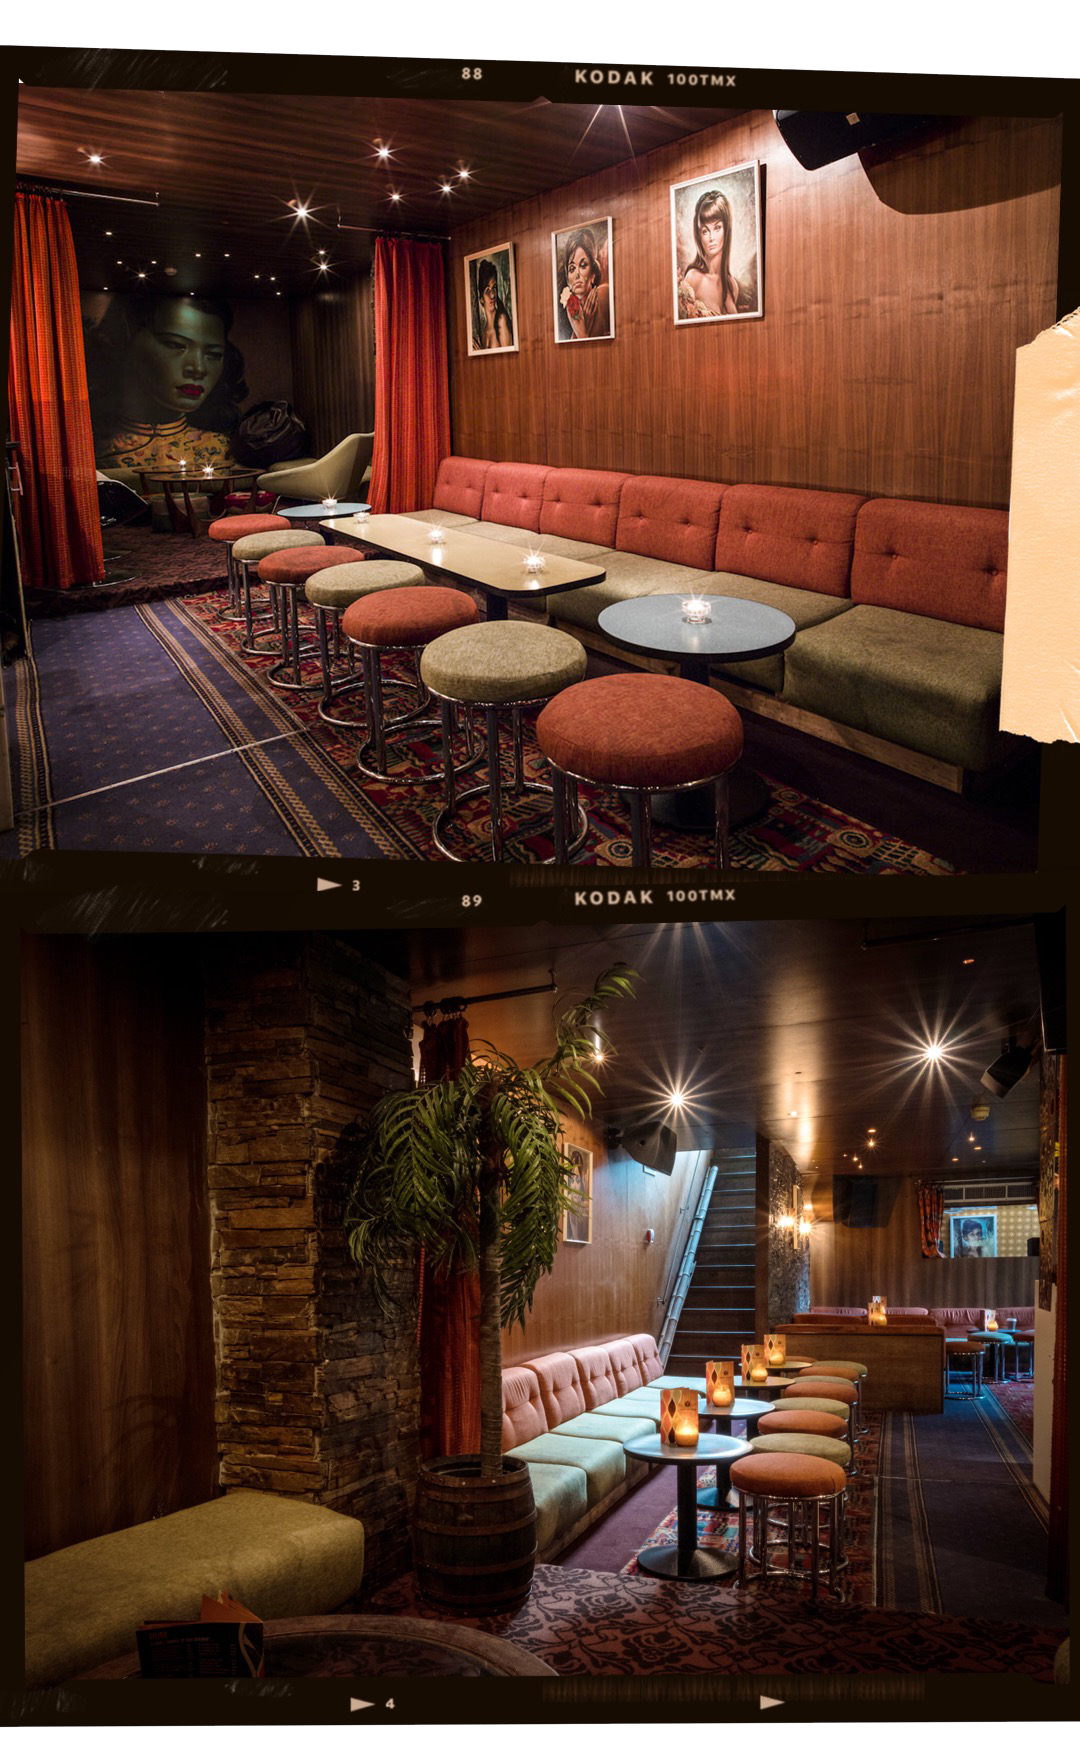 TRAILER HAPPINESS - Described as a rum lounge, the bar is a mixture of retro, kitsch and tiki decor. This cosy basement bar also serves award-winning cocktails that are far from boring. Be sure also to check out their Caribbean snacks.Location:177 Portobello Road, W11 2DY